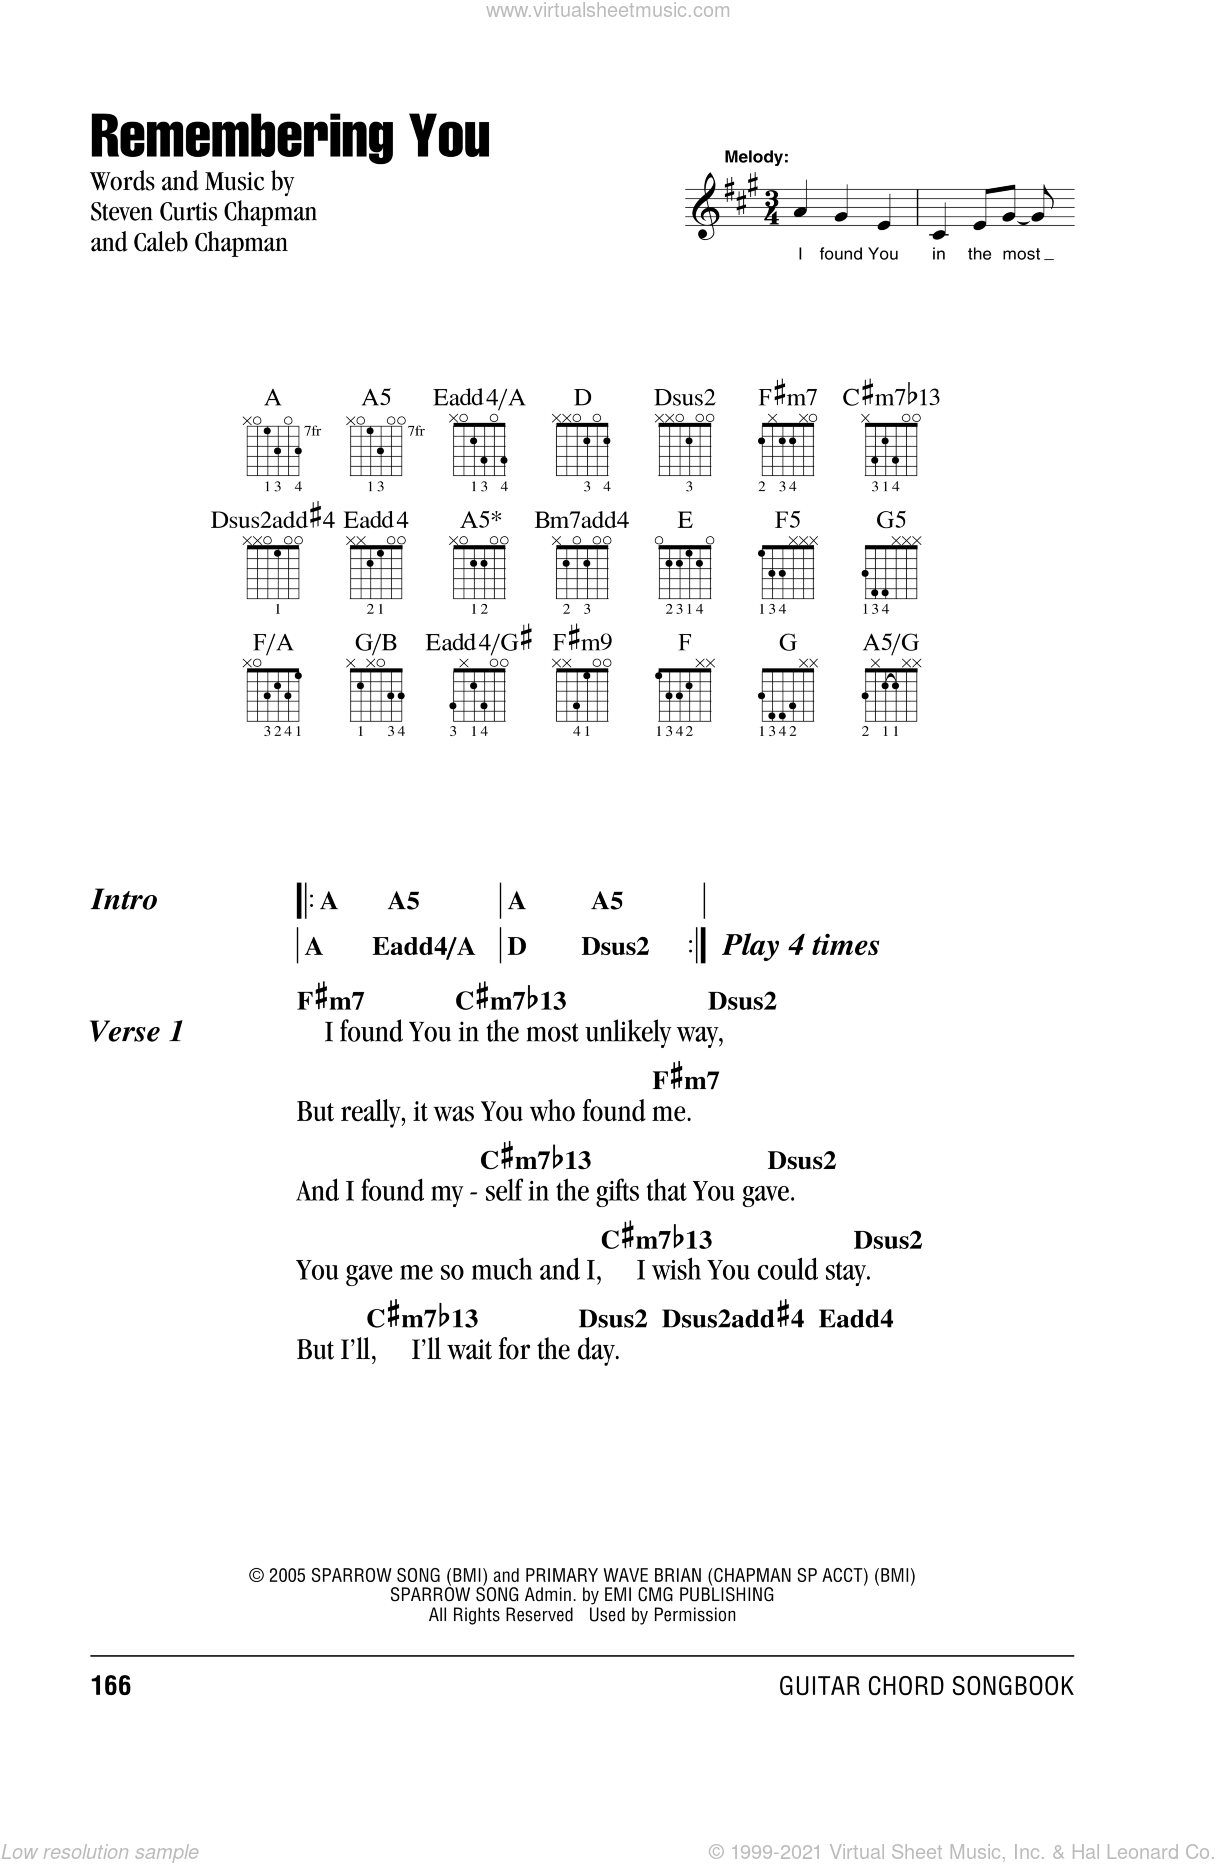 Remembering You sheet music for guitar (chords, lyrics, melody) by Caleb Chapman